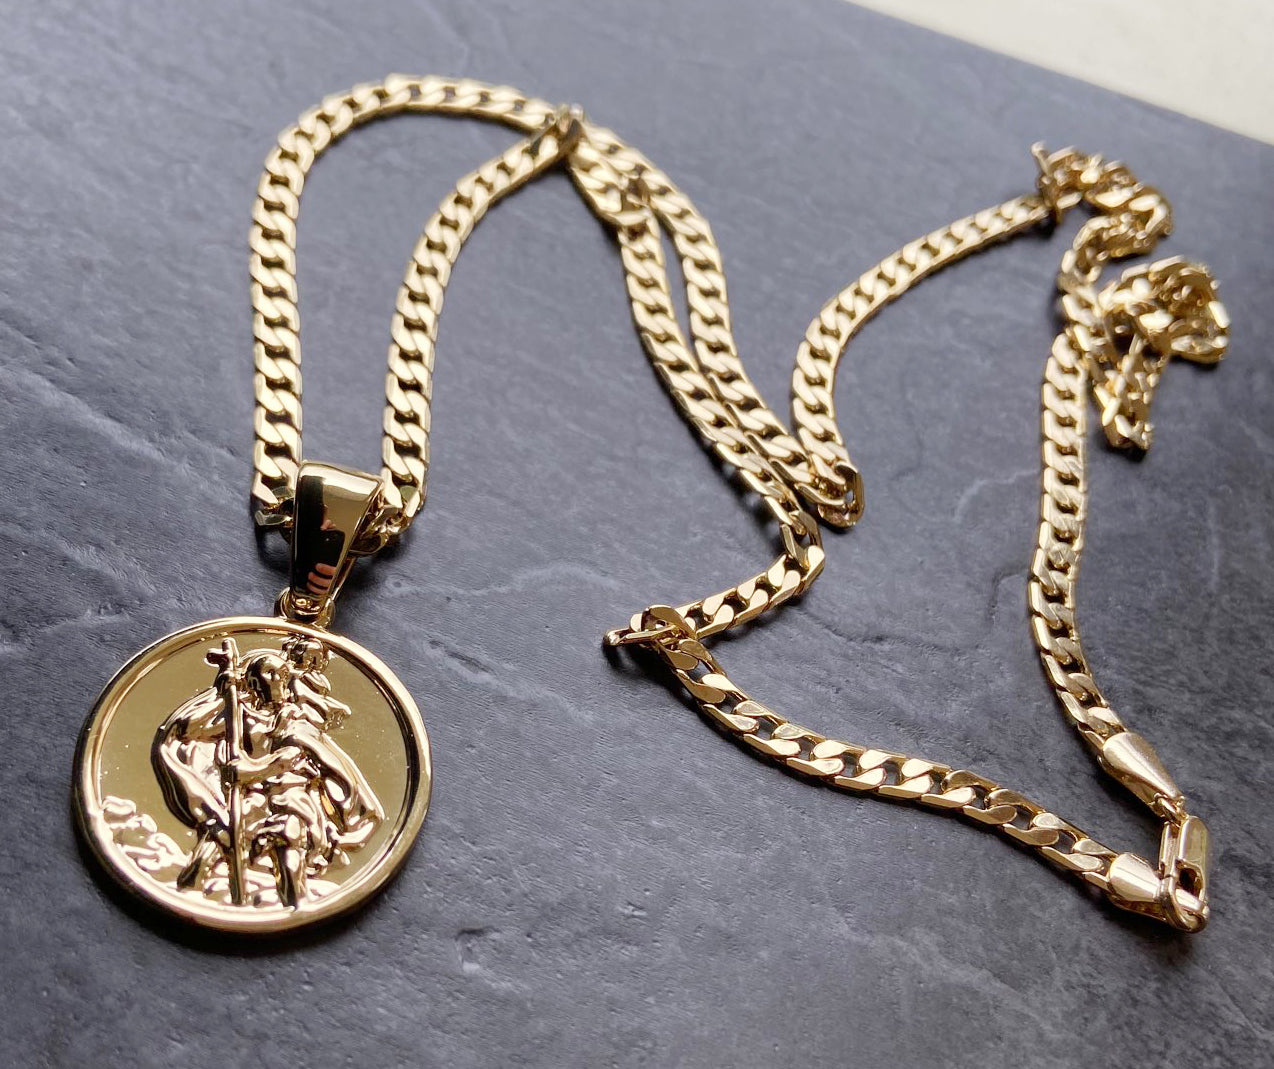 16 Inch Gold St. Christopher Pendant-Necklaces and Pendants-The Bling King-Bling King